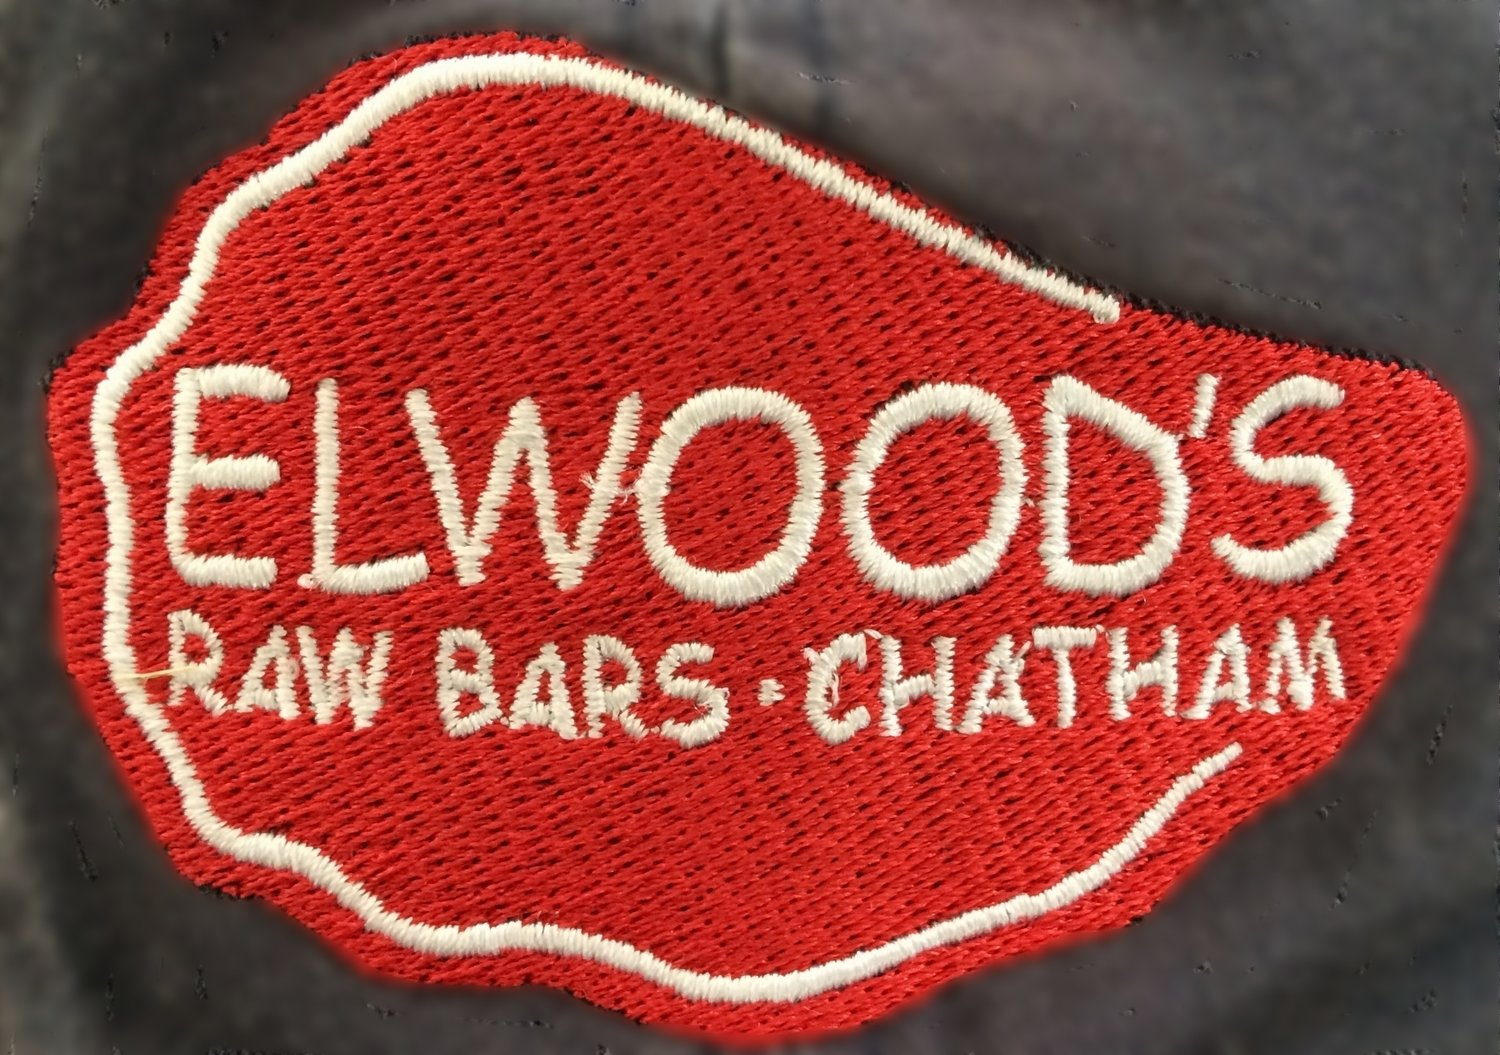 ELWOODS RAW BARS